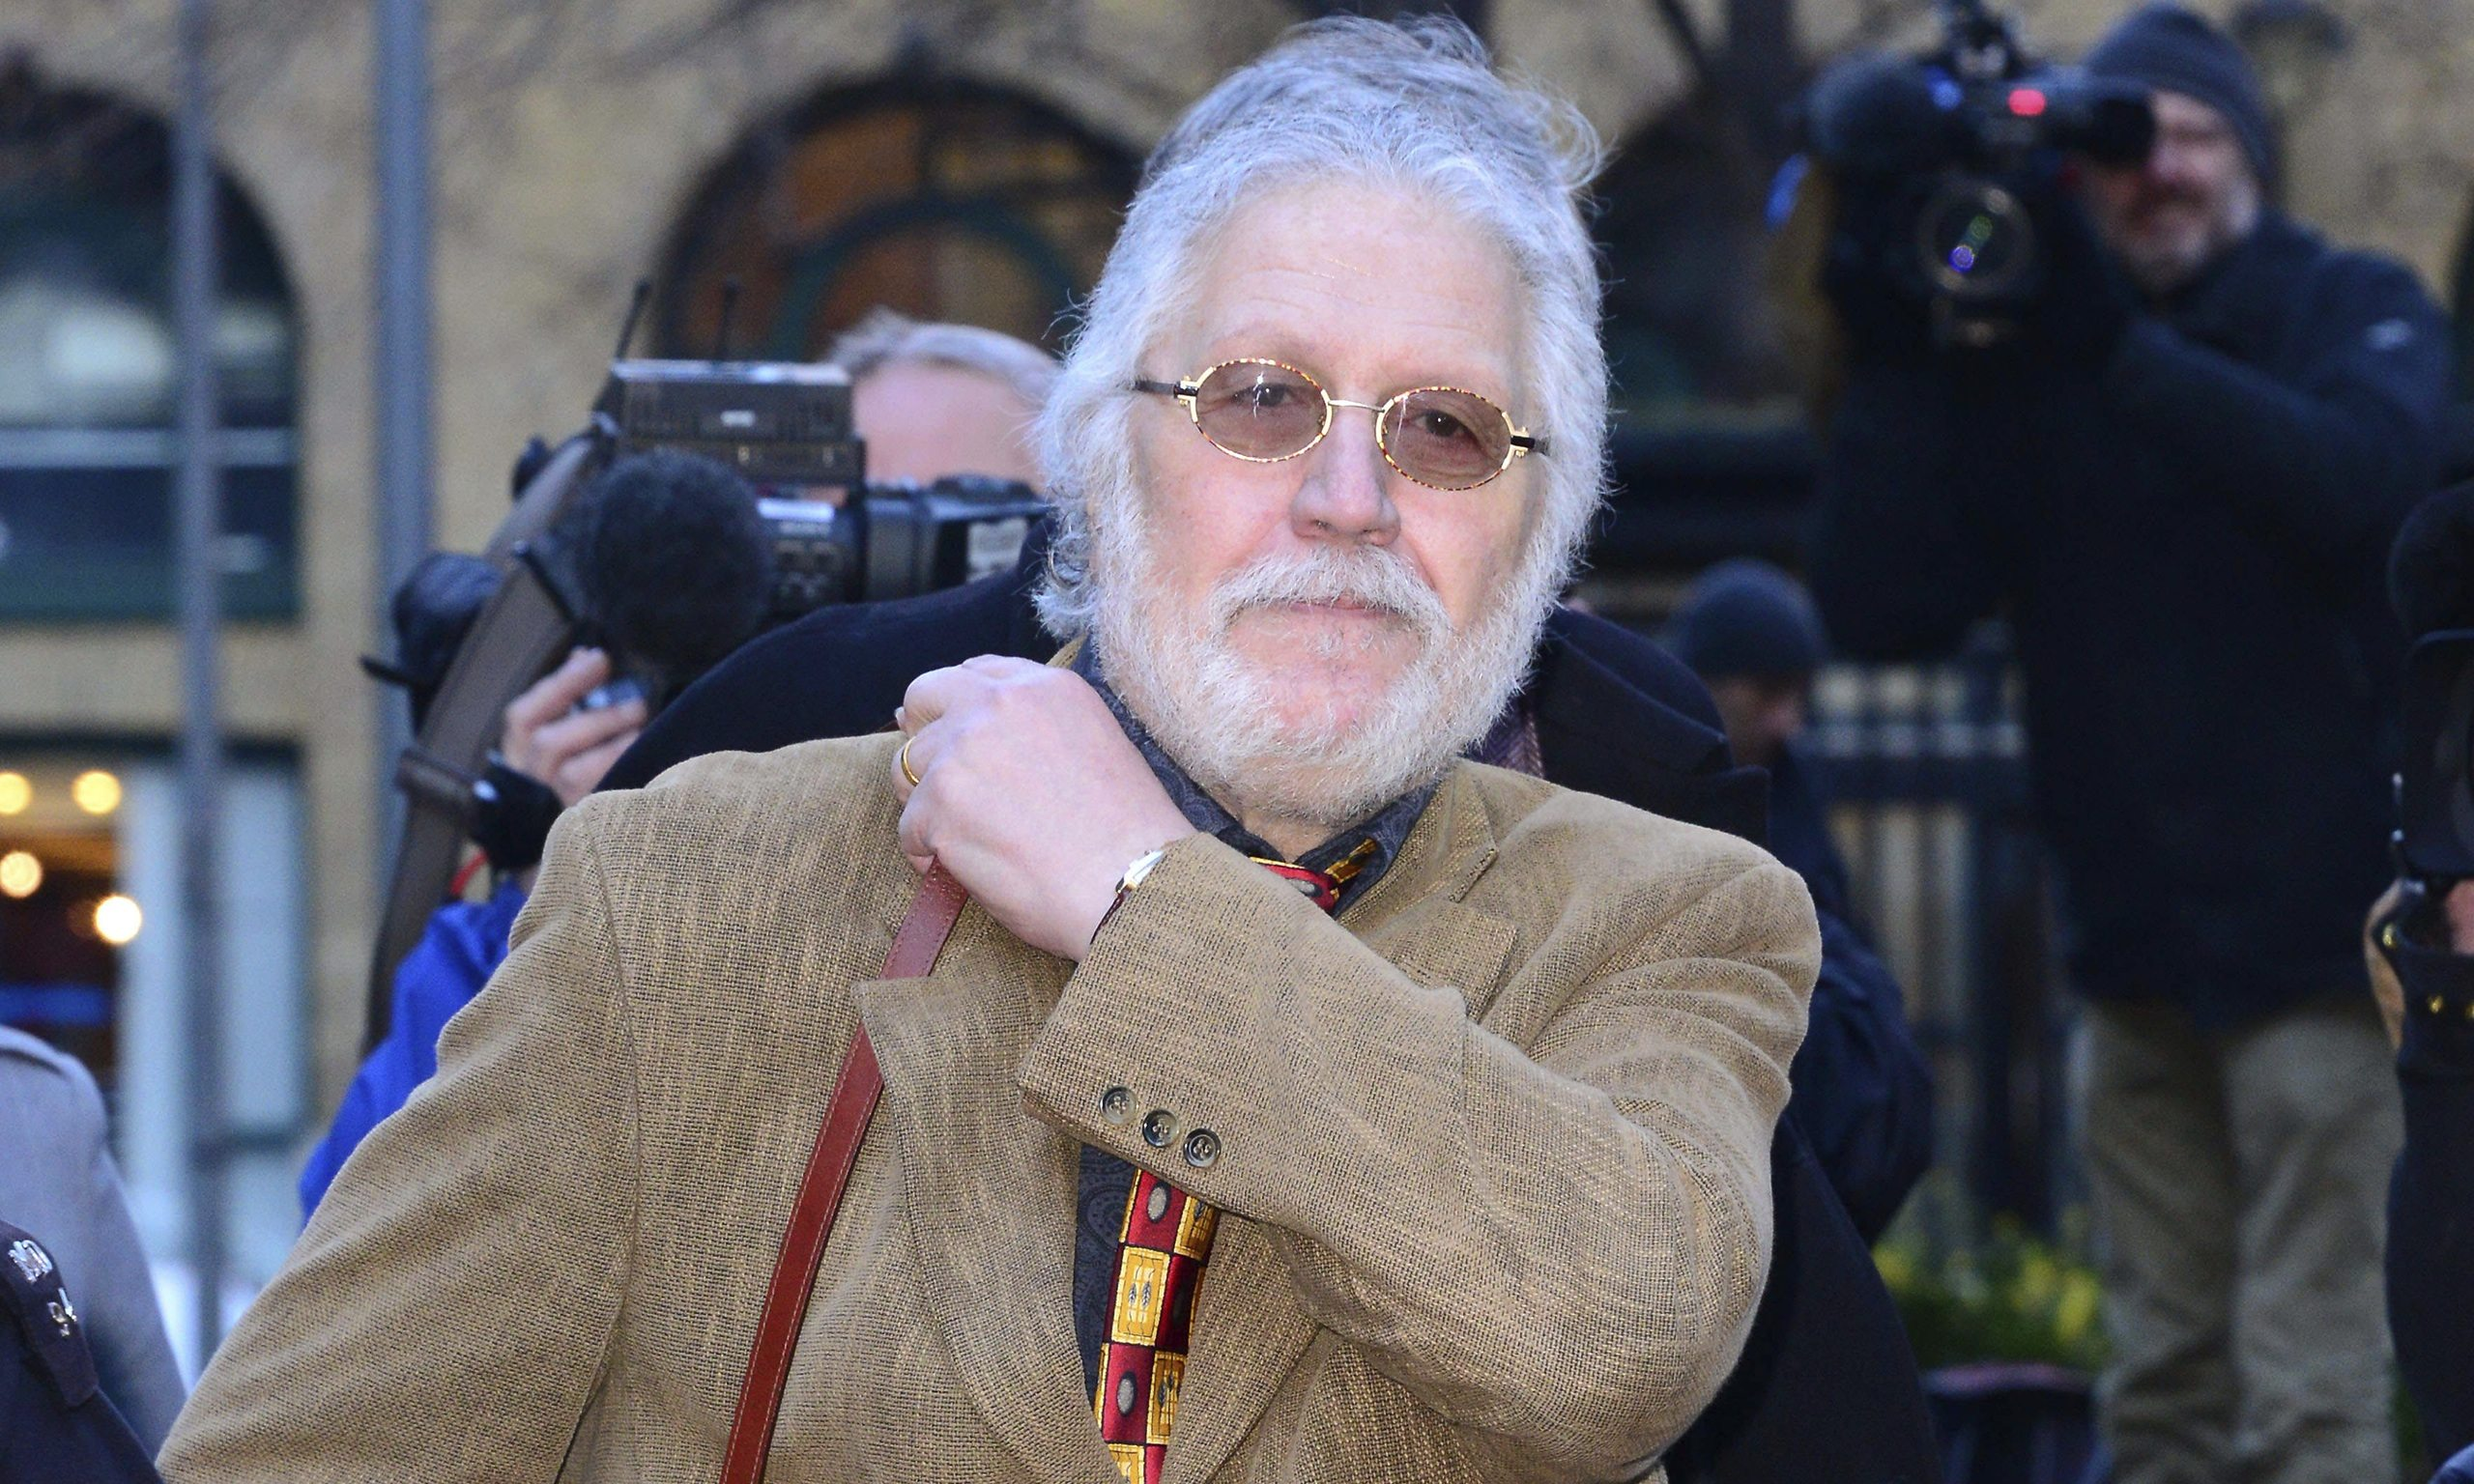 Dave Lee Travis used fame to target vulnerable young women ...